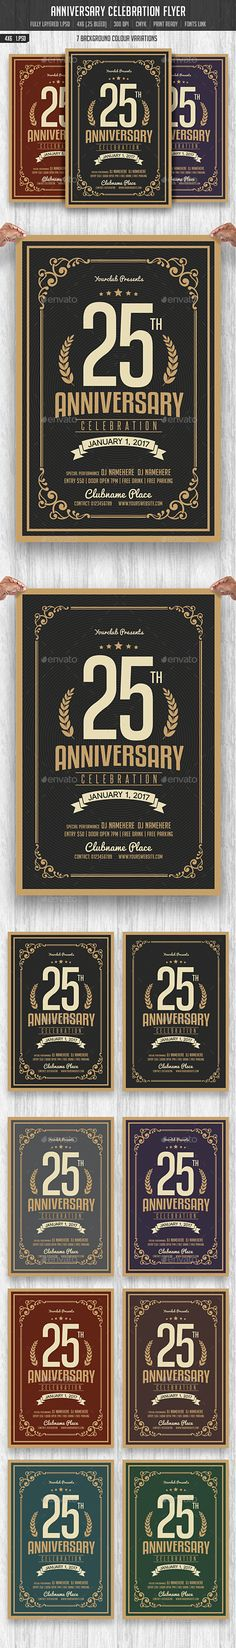 Anniversary Celebration Flyer Template PSD. Download here: http://graphicriver.net/item/anniversary-celebration-flyer/15376525?ref=ksioks